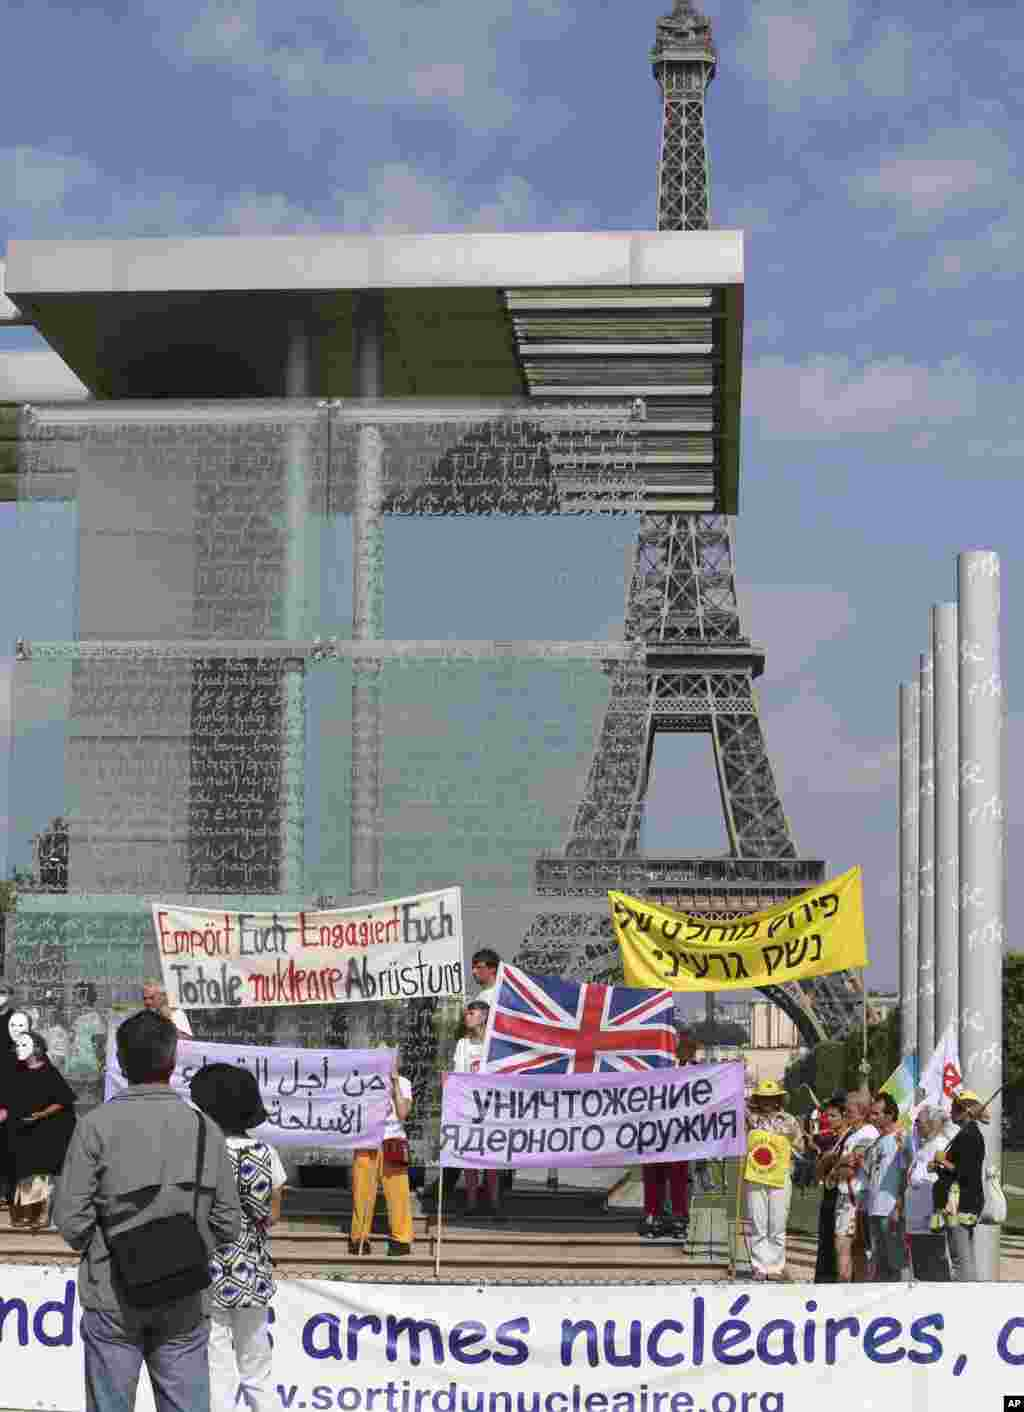 Pacifists stage a demonstration at the Peace Wall in Paris, to commemorate the 68th anniversary of the atomic bombing of Nagasaki, August 9, 2013.